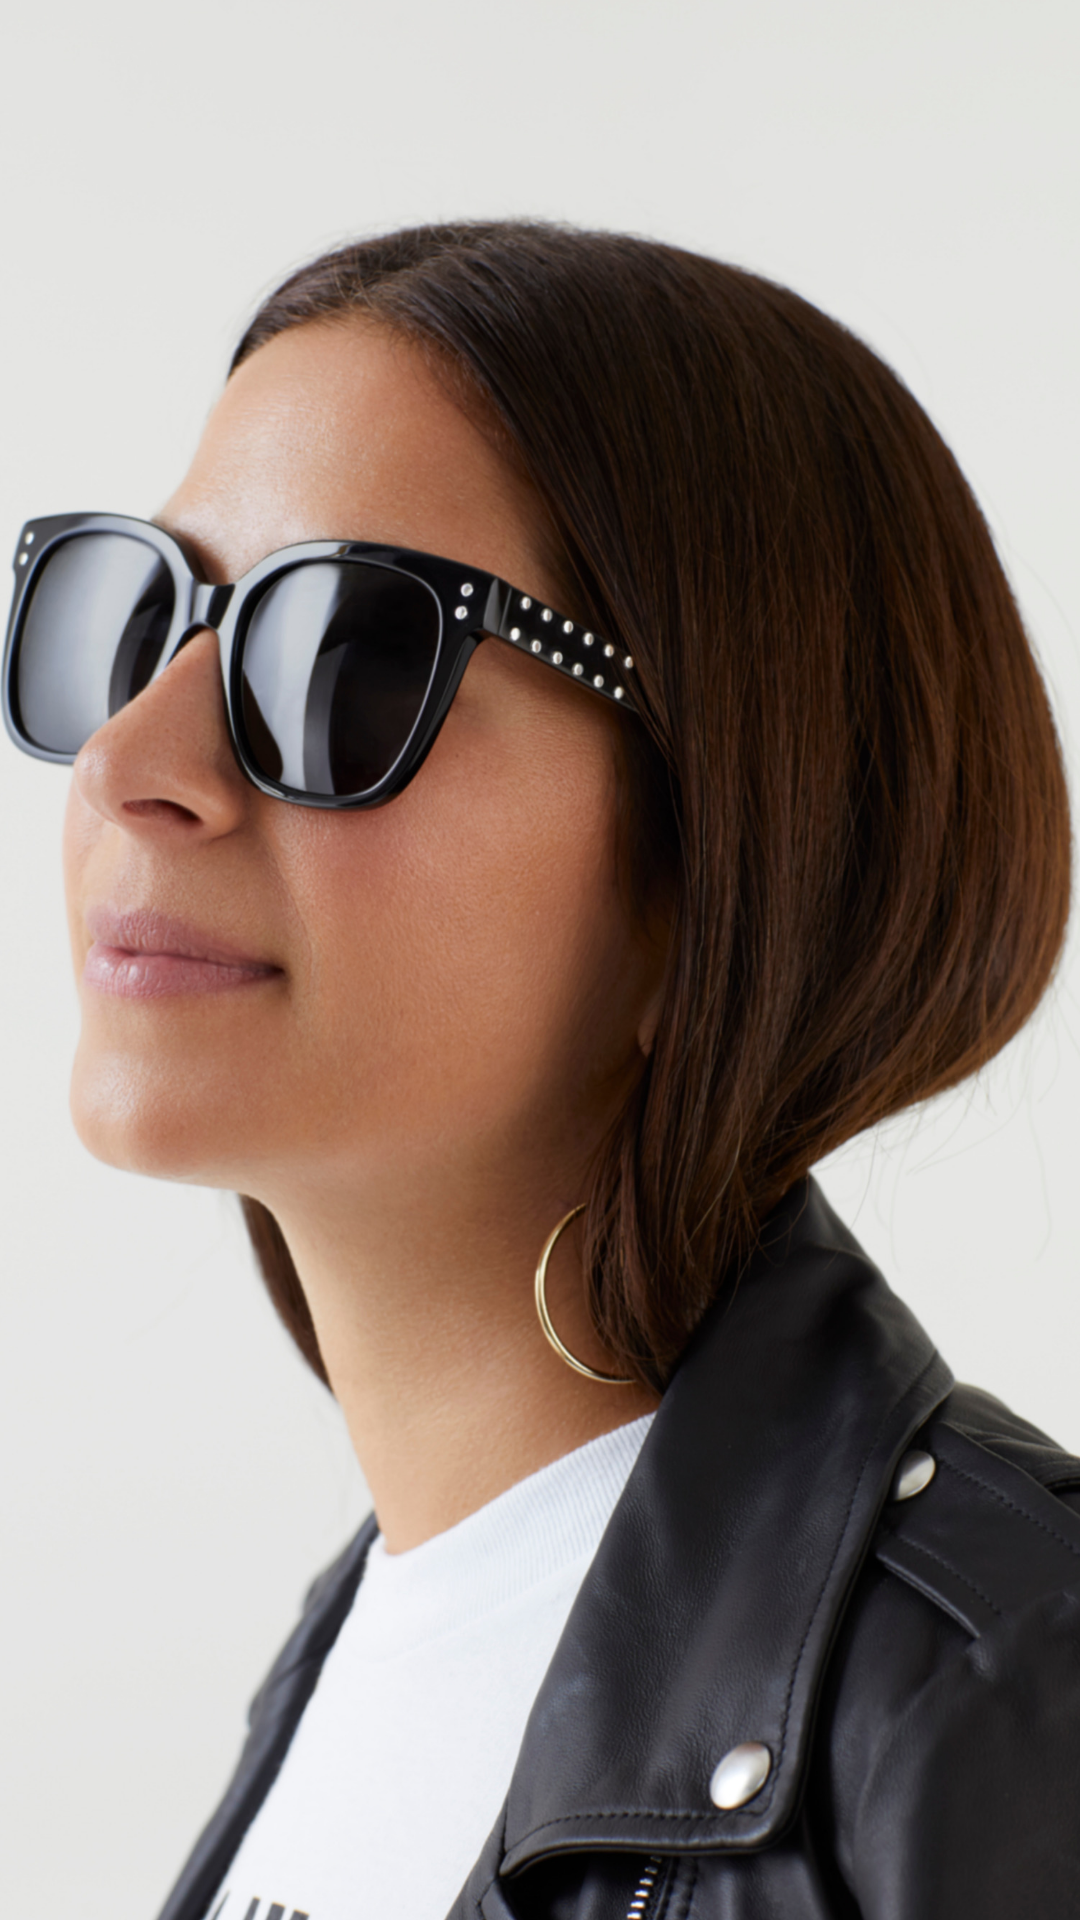 dfecd8632f Rebecca Minkoff wears the Cyndi Acetate Square Sunglasses from her  sunglasses collection.